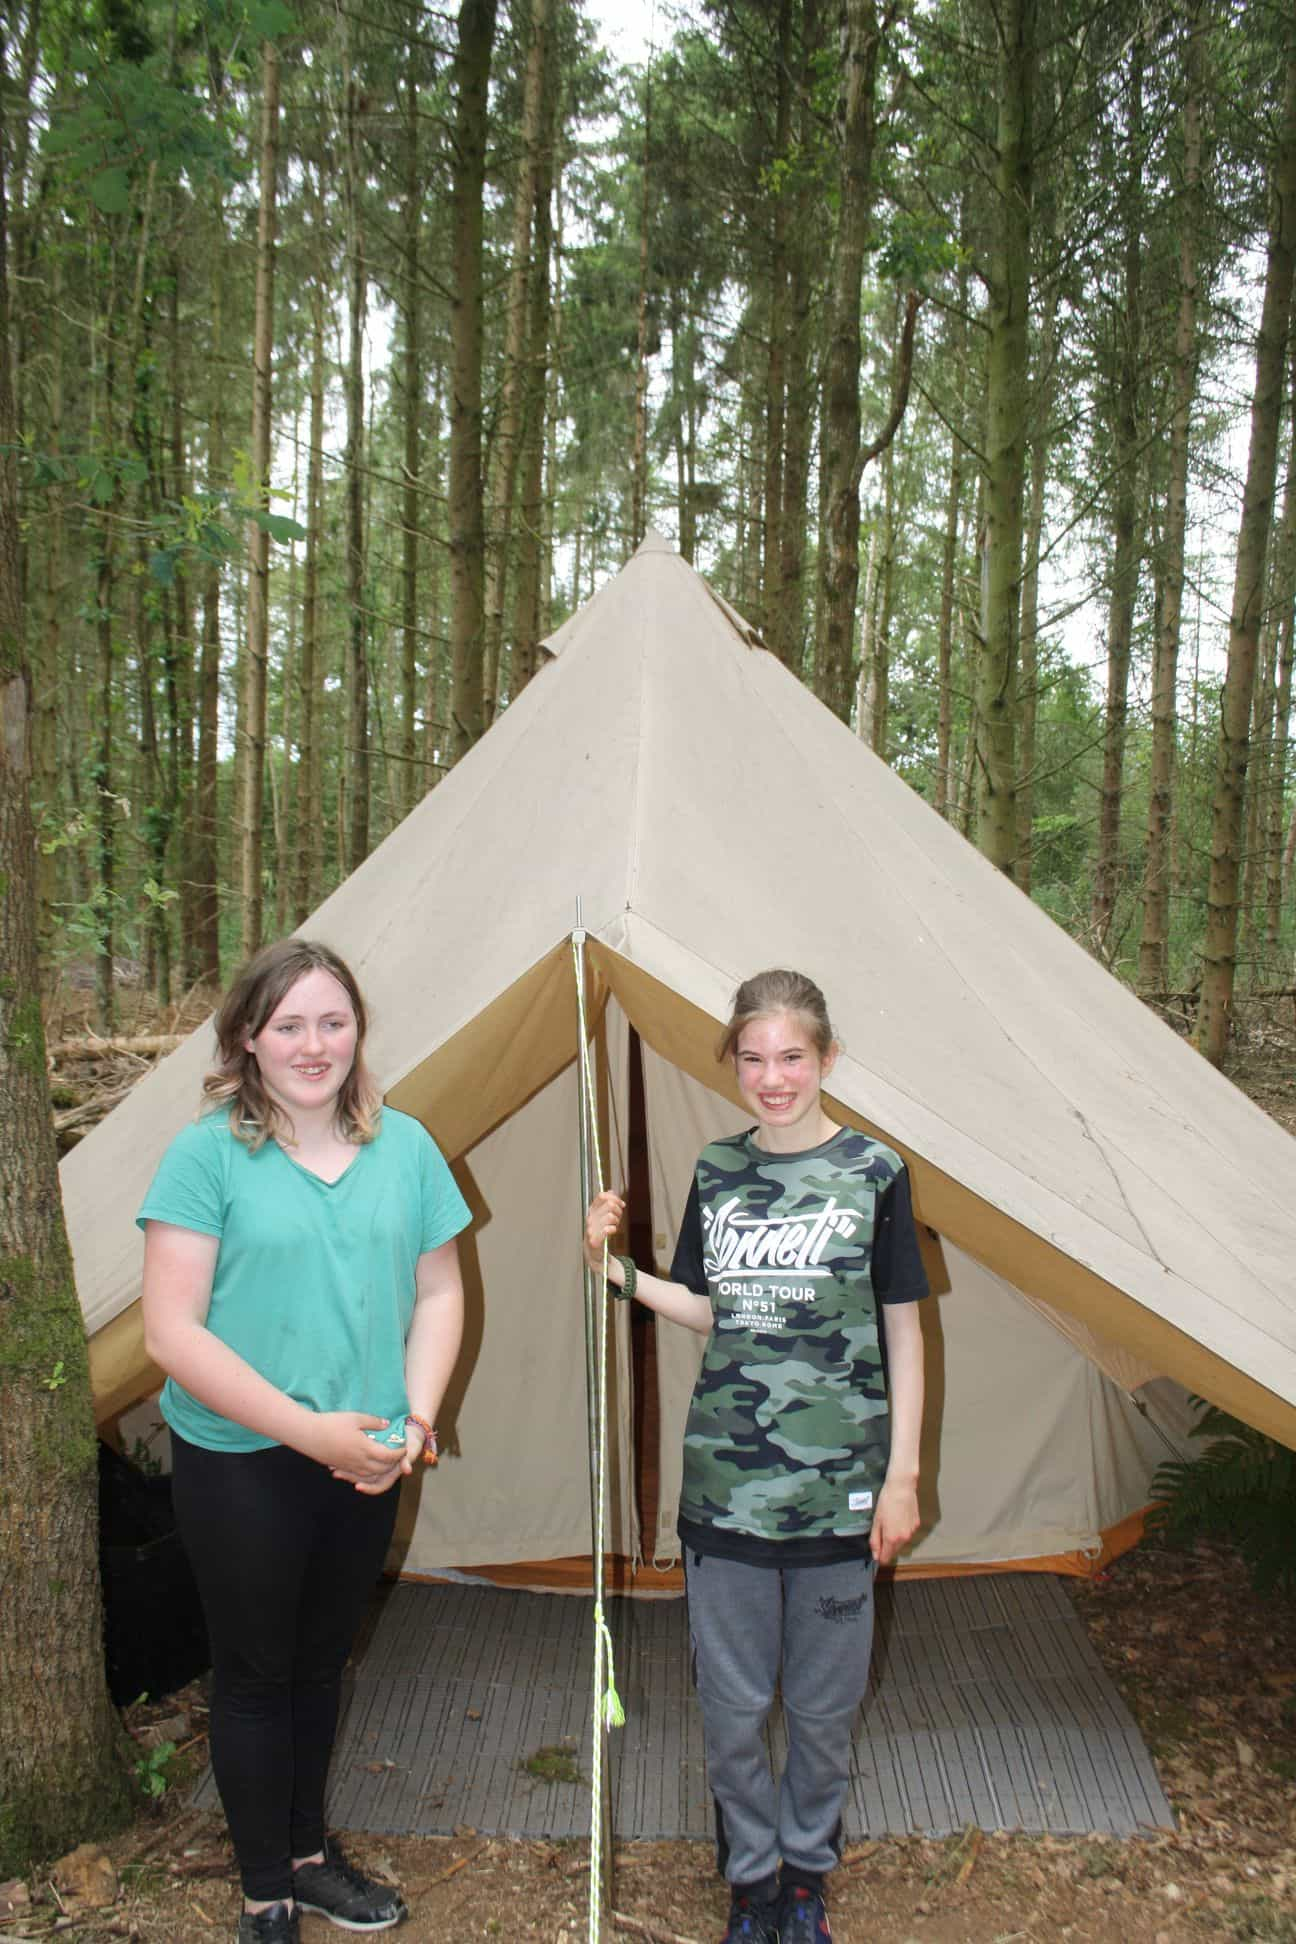 Niamh and Lauren show off their tent on LVS Oxford's residential trip to Blenheim Woods